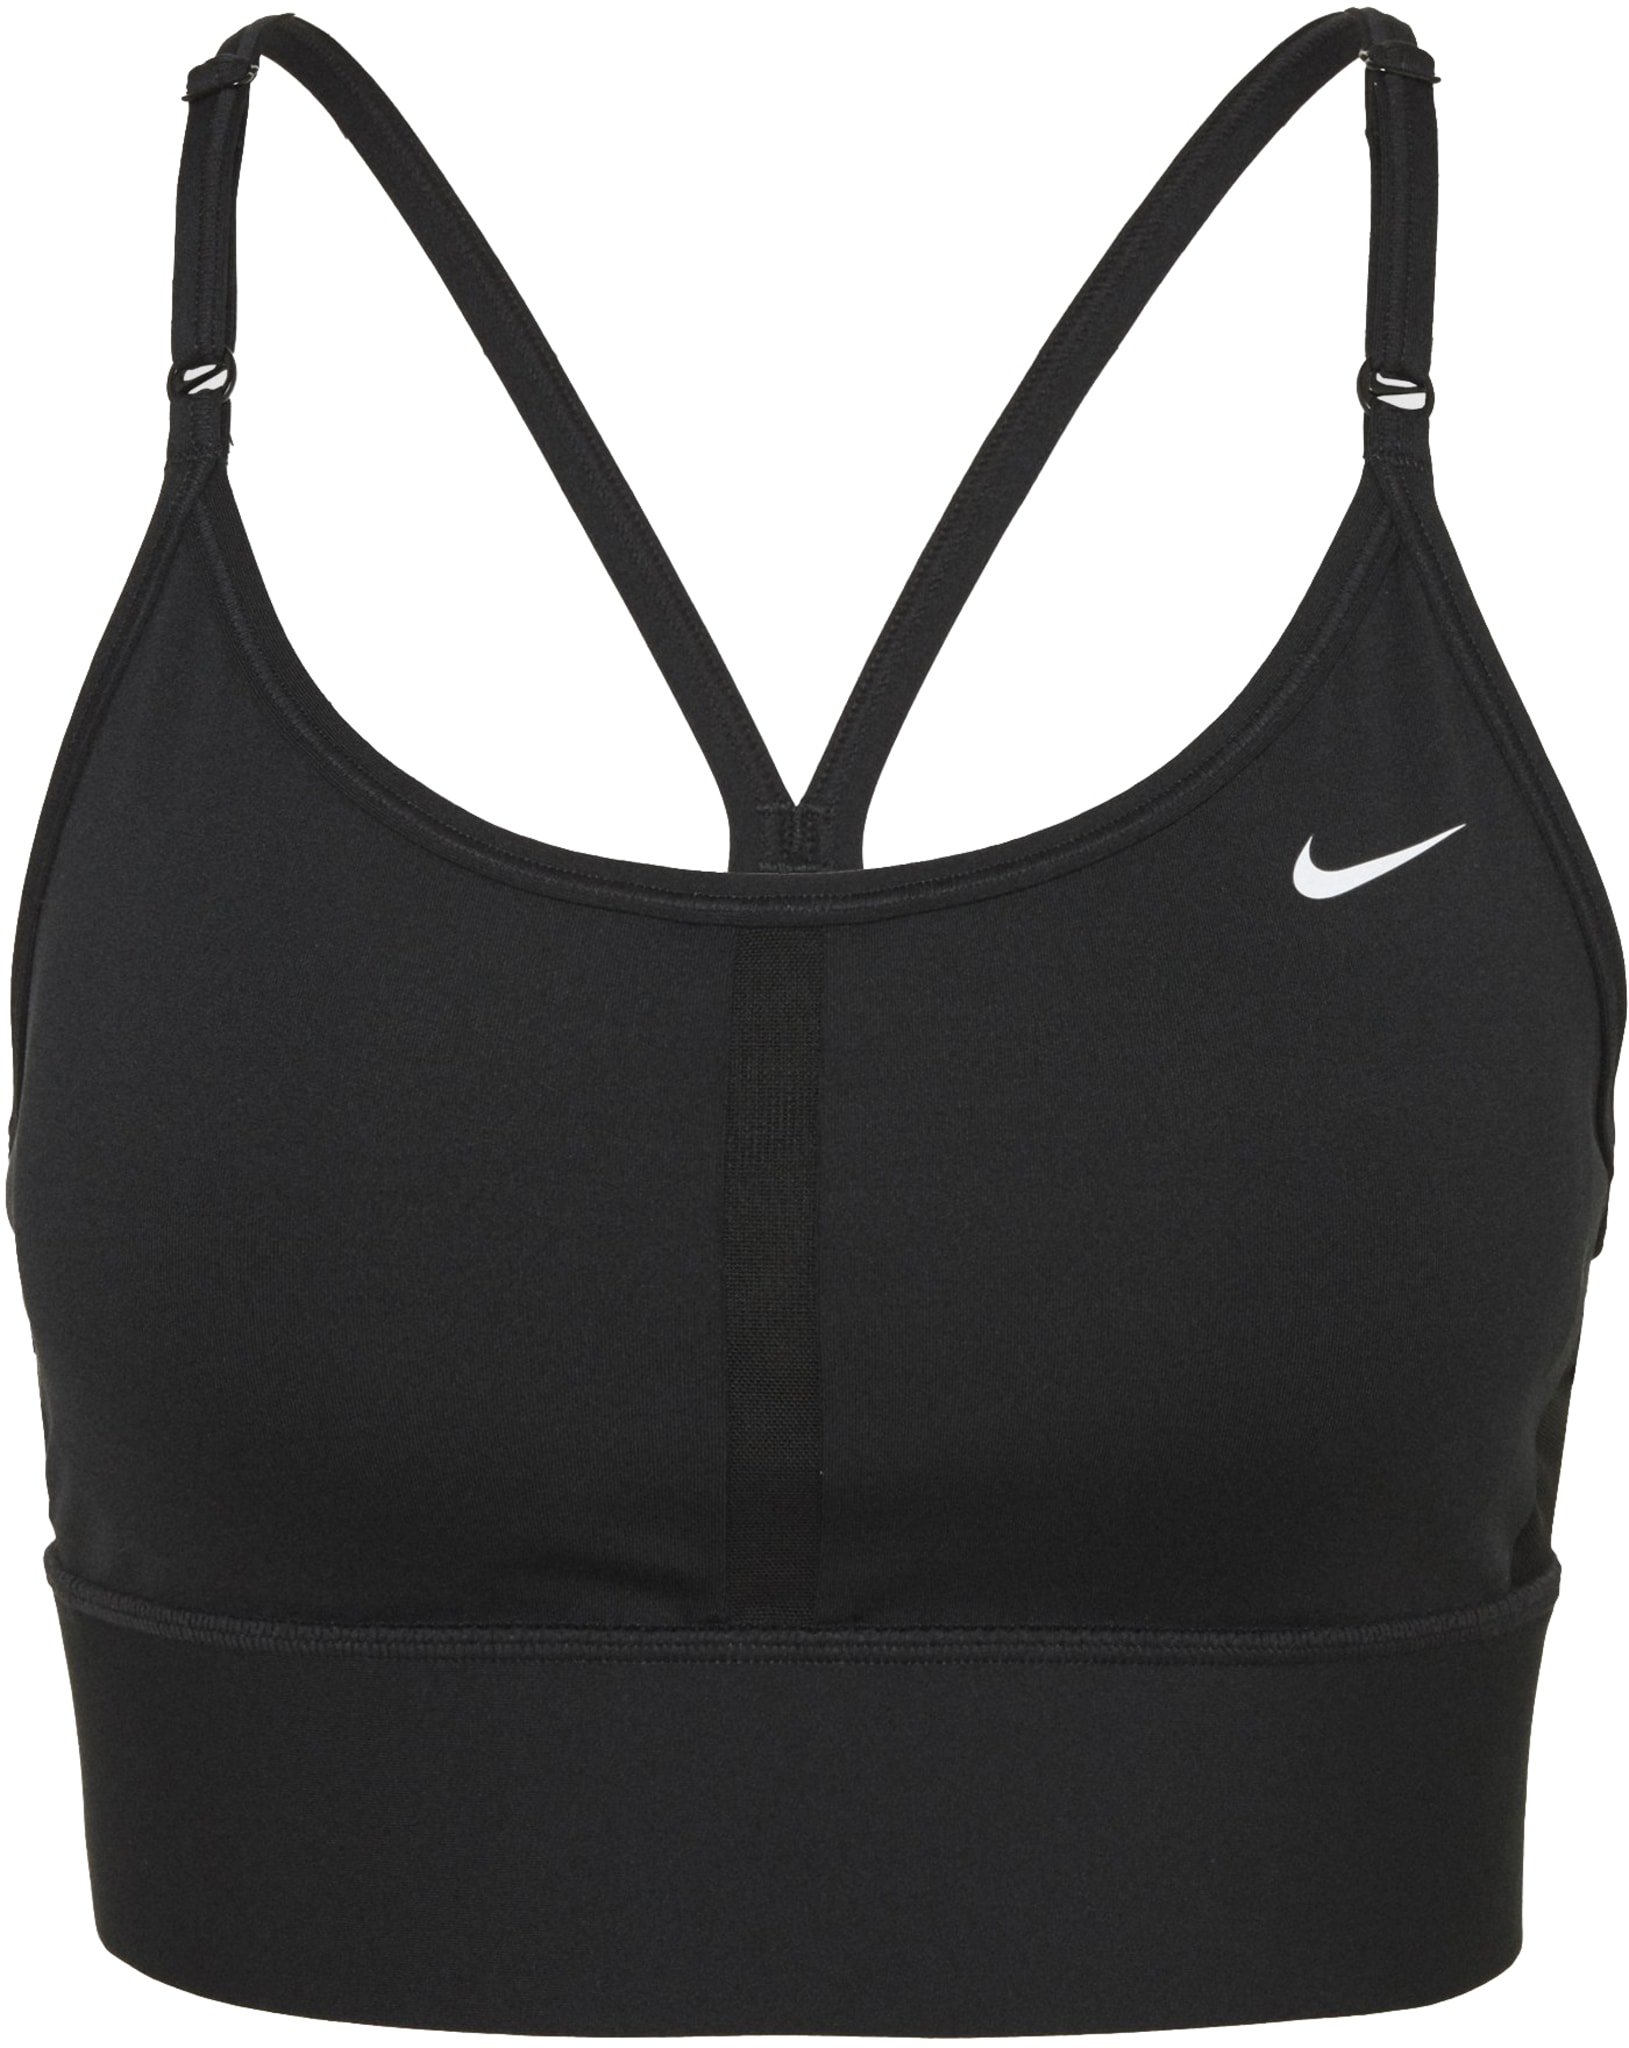 Indy Ligh-Support Padded Sports Bra W